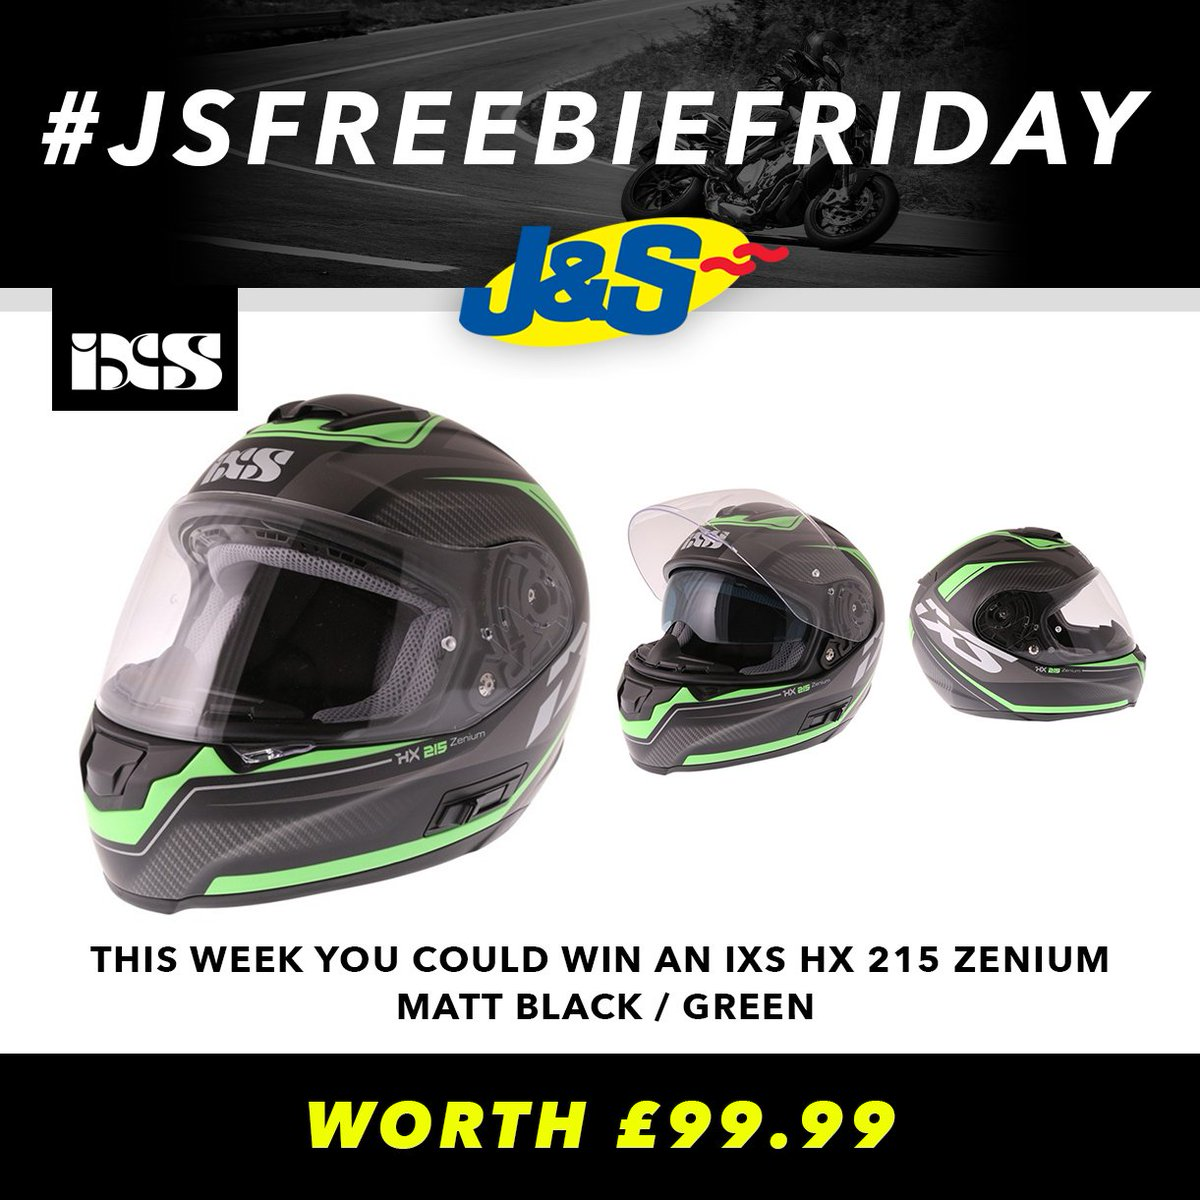 #JSFREEBIEFRIDAY Retweet this post and follow us for a chance to win an IXS HX 215 Zenium Helmet worth £99.99. Ends Tues June 26th. You can also enter by signing up to our newsletter here:   Happy Friday everyone!